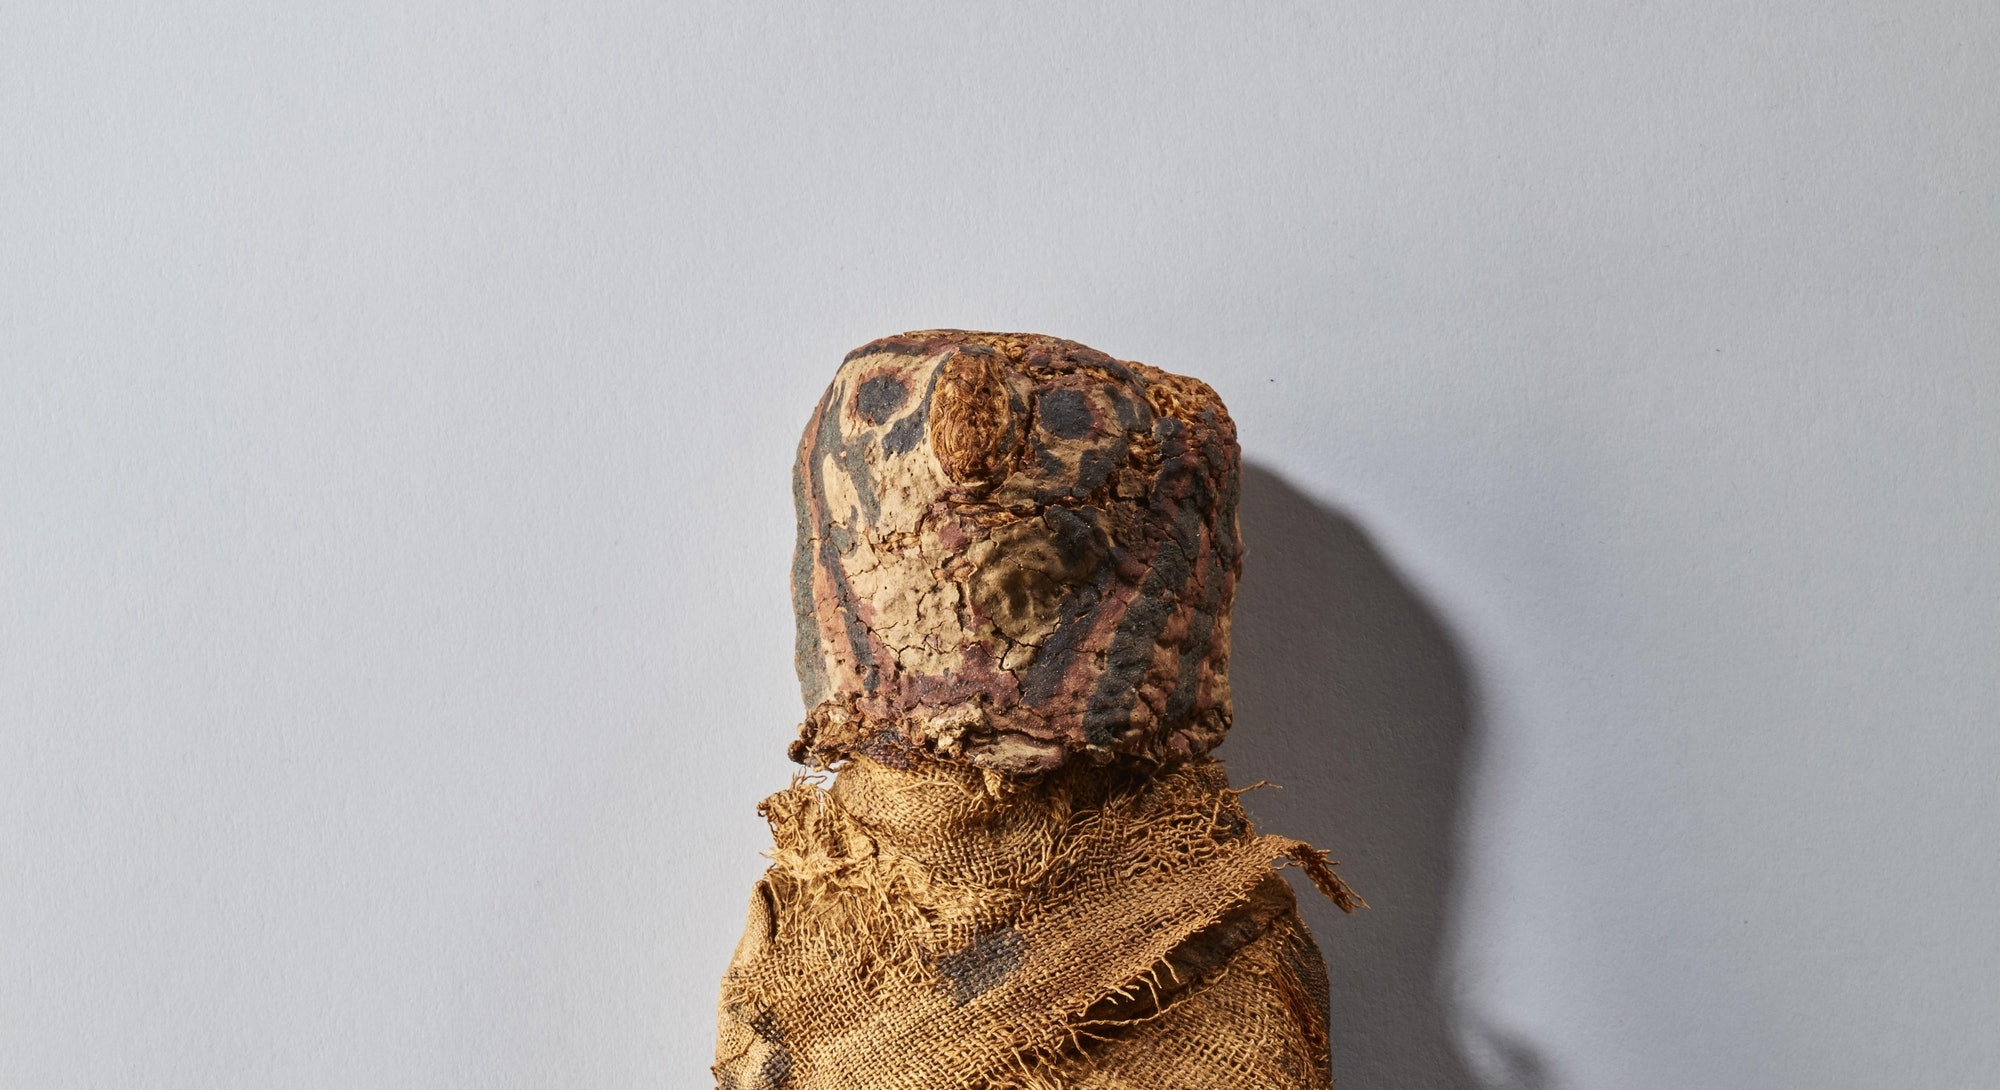 Mummified hawk. Egyptian. 1550-1370 B.C.E. mummified hawk. oil. resin. linen. pigment. 12-1/4 x 3-1/4 x 2-3/4 in. Ancient Art of the Mediterranean. (Photo by: Sepia Times/Universal Images Group via Getty Images)